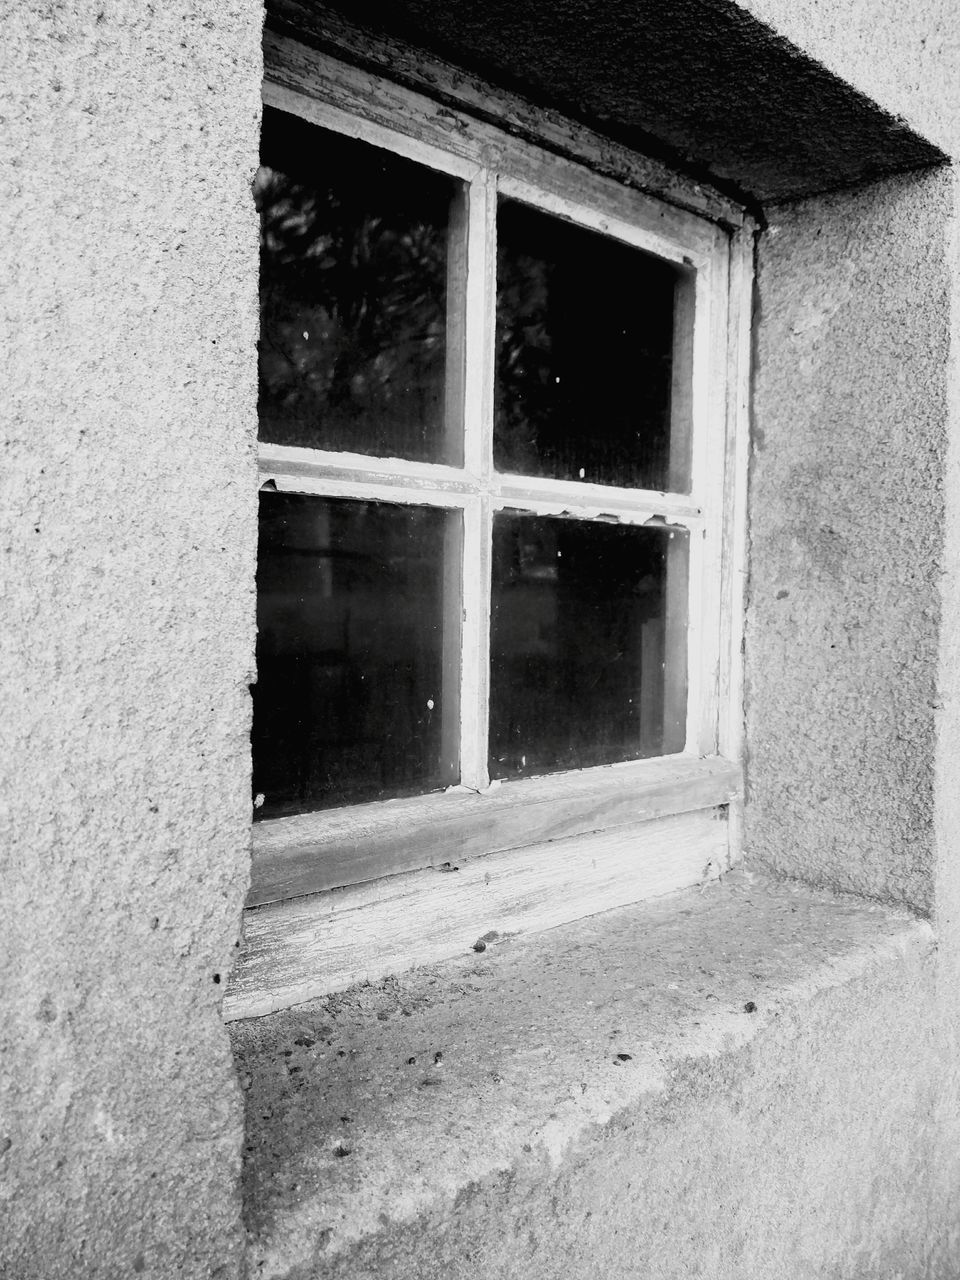 window, architecture, built structure, building exterior, day, no people, outdoors